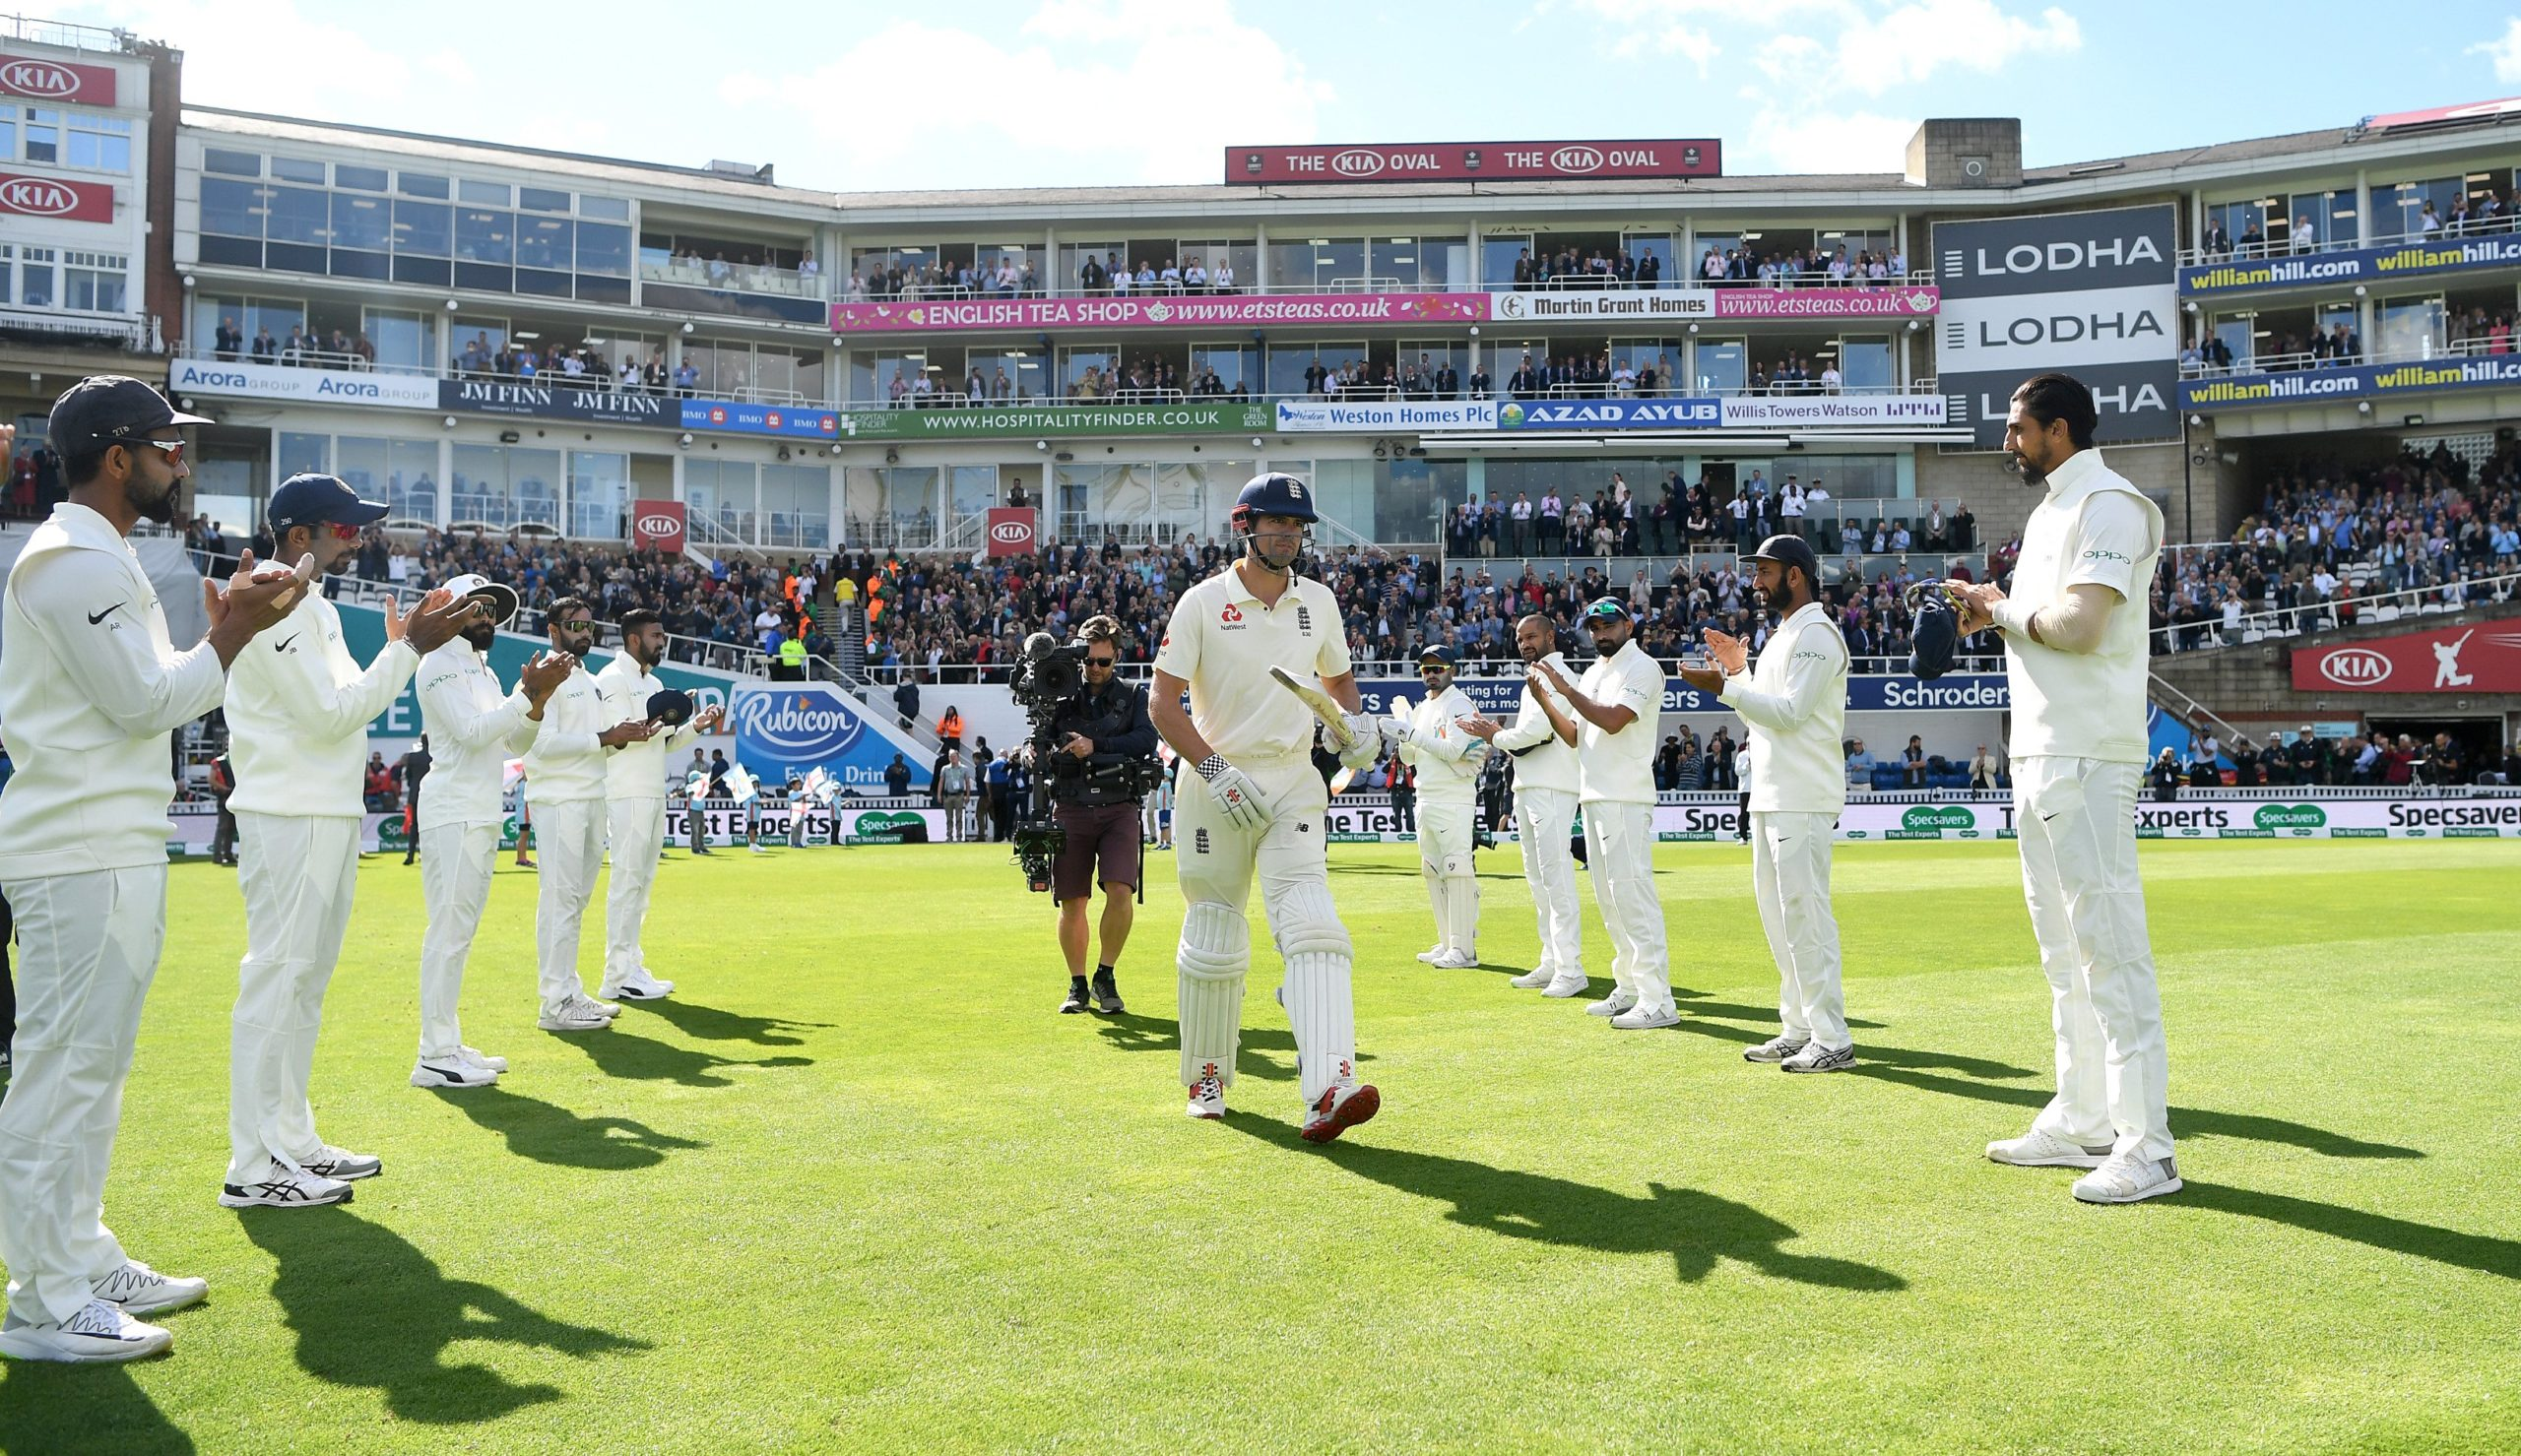 How sweating in the spirit of Cricket led to a raging war? 7